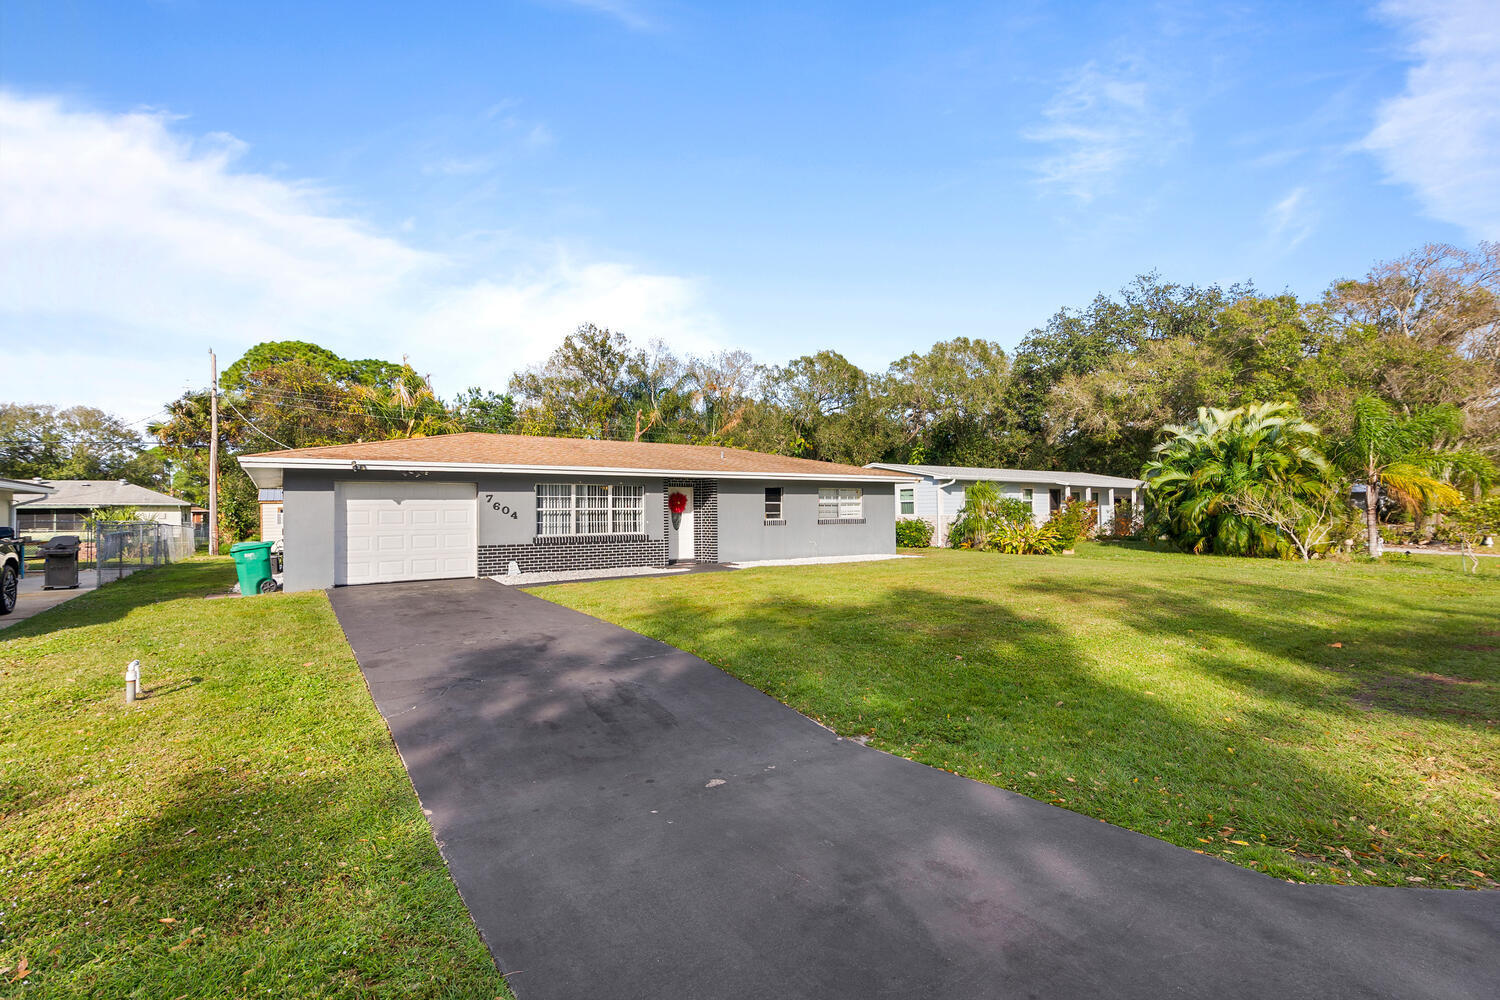 7604 James Road, Fort Pierce, FL 34951